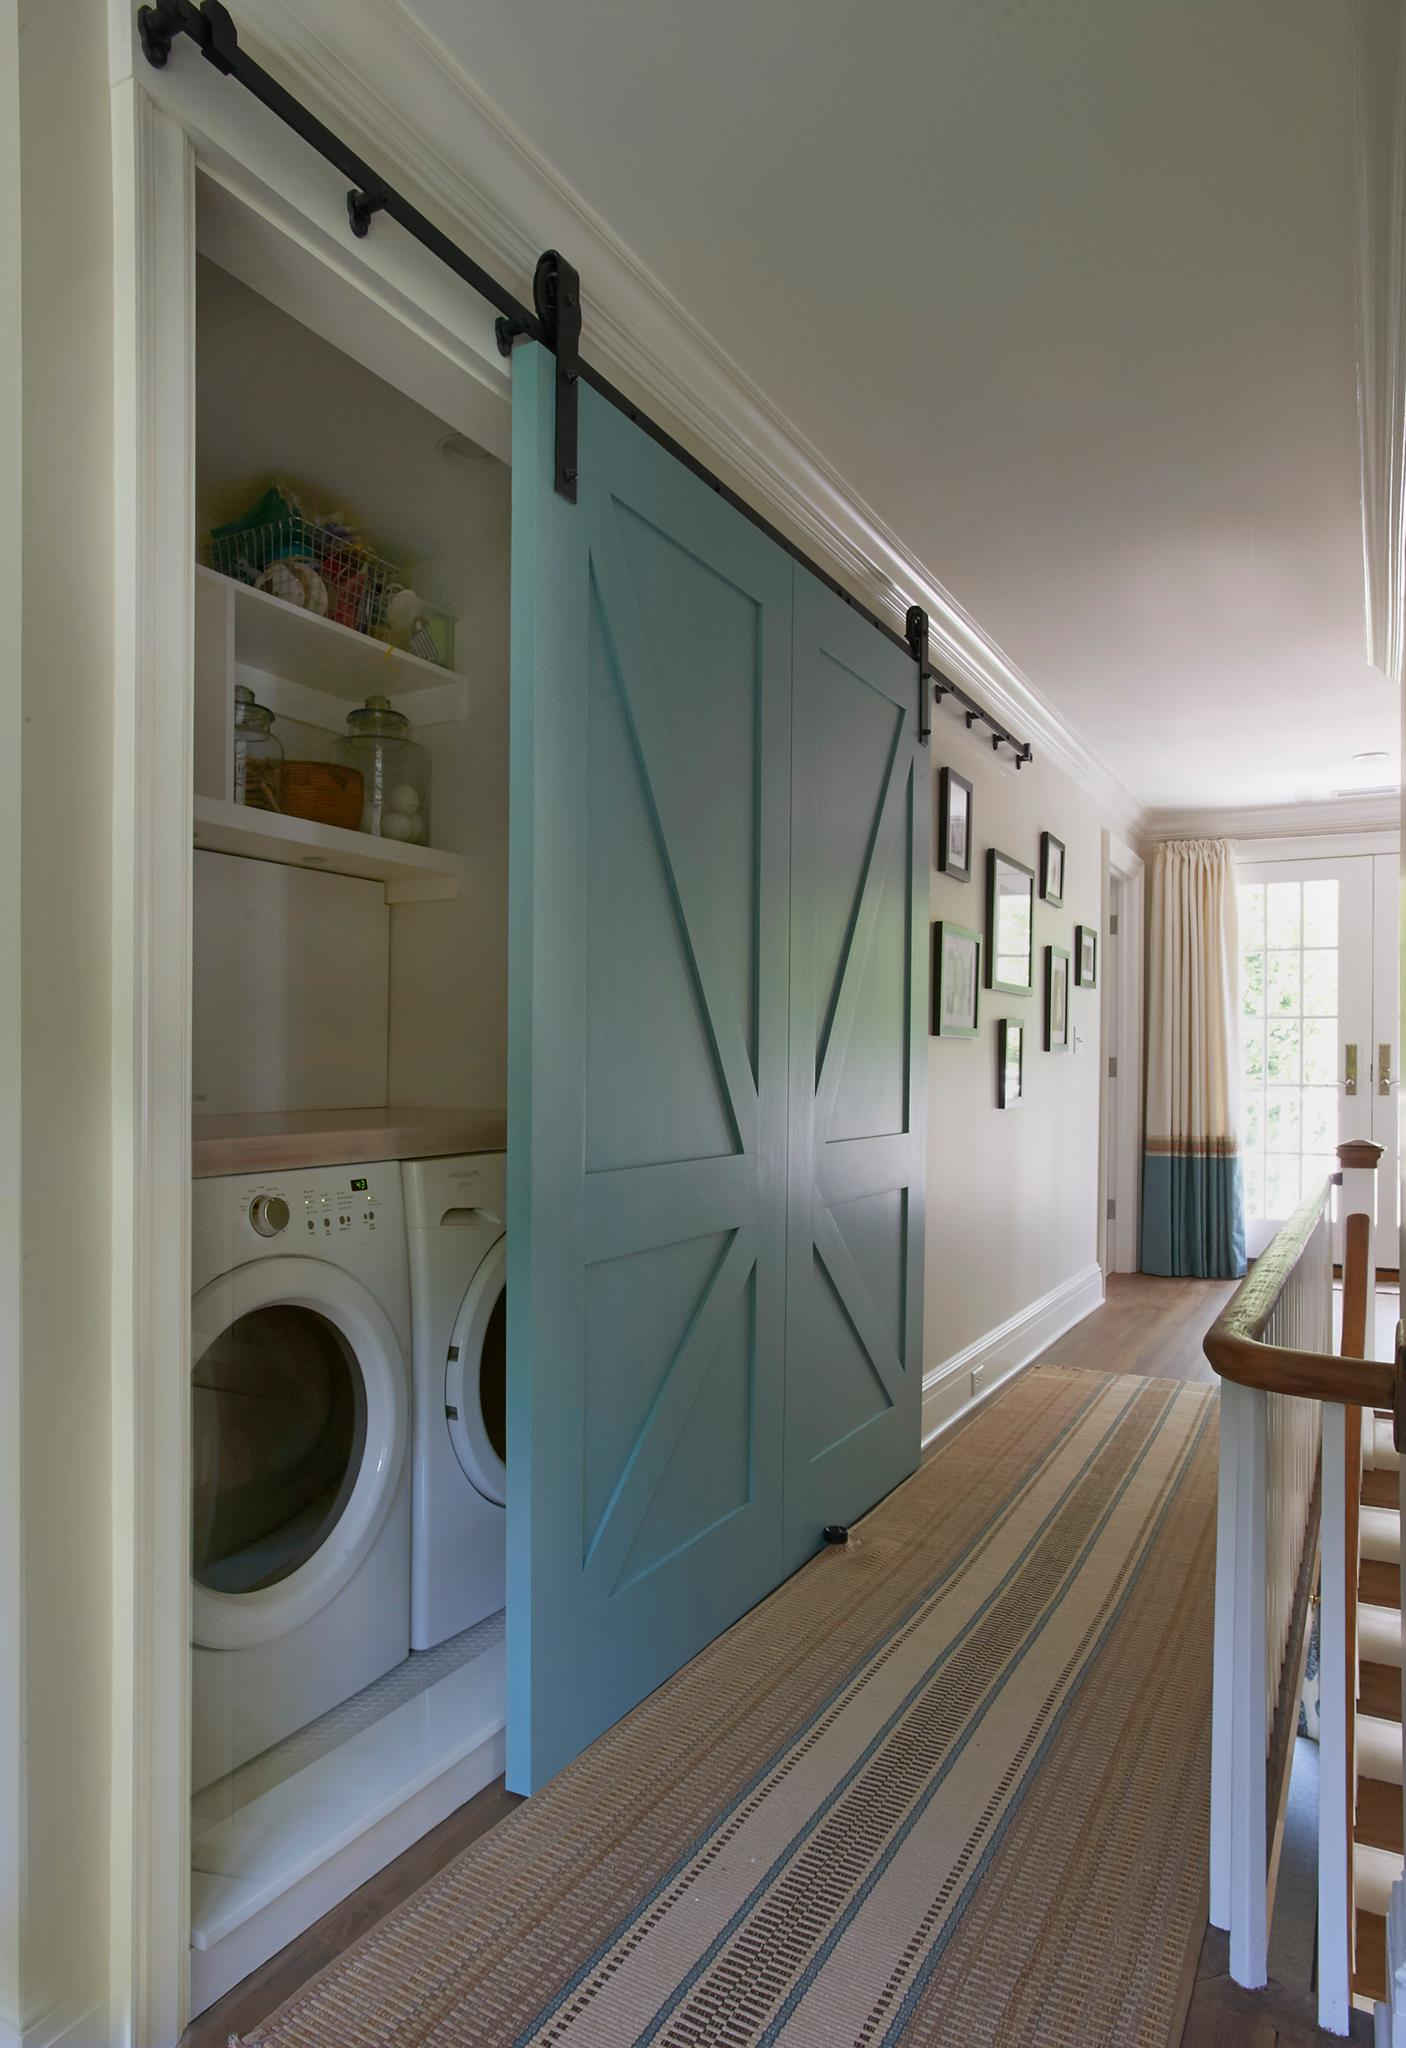 Great Space saving solution and I love the barn door,  Just to bad that there is no room for a stylish farmhouse laundry room sink